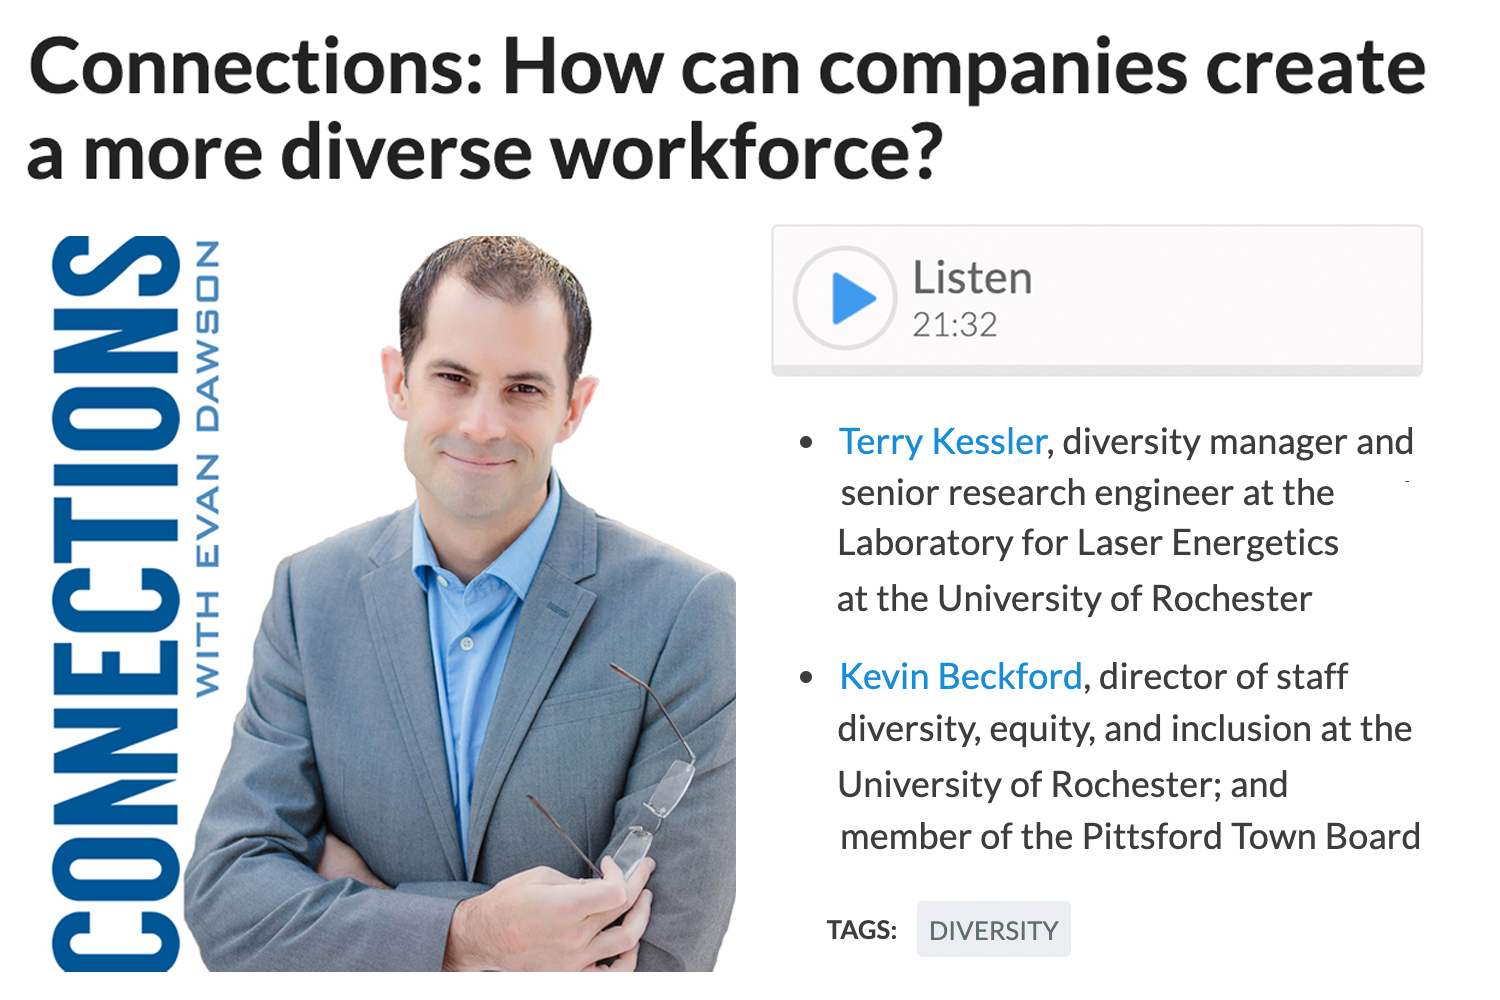 Connections: How can companies create a more diverse workforce?